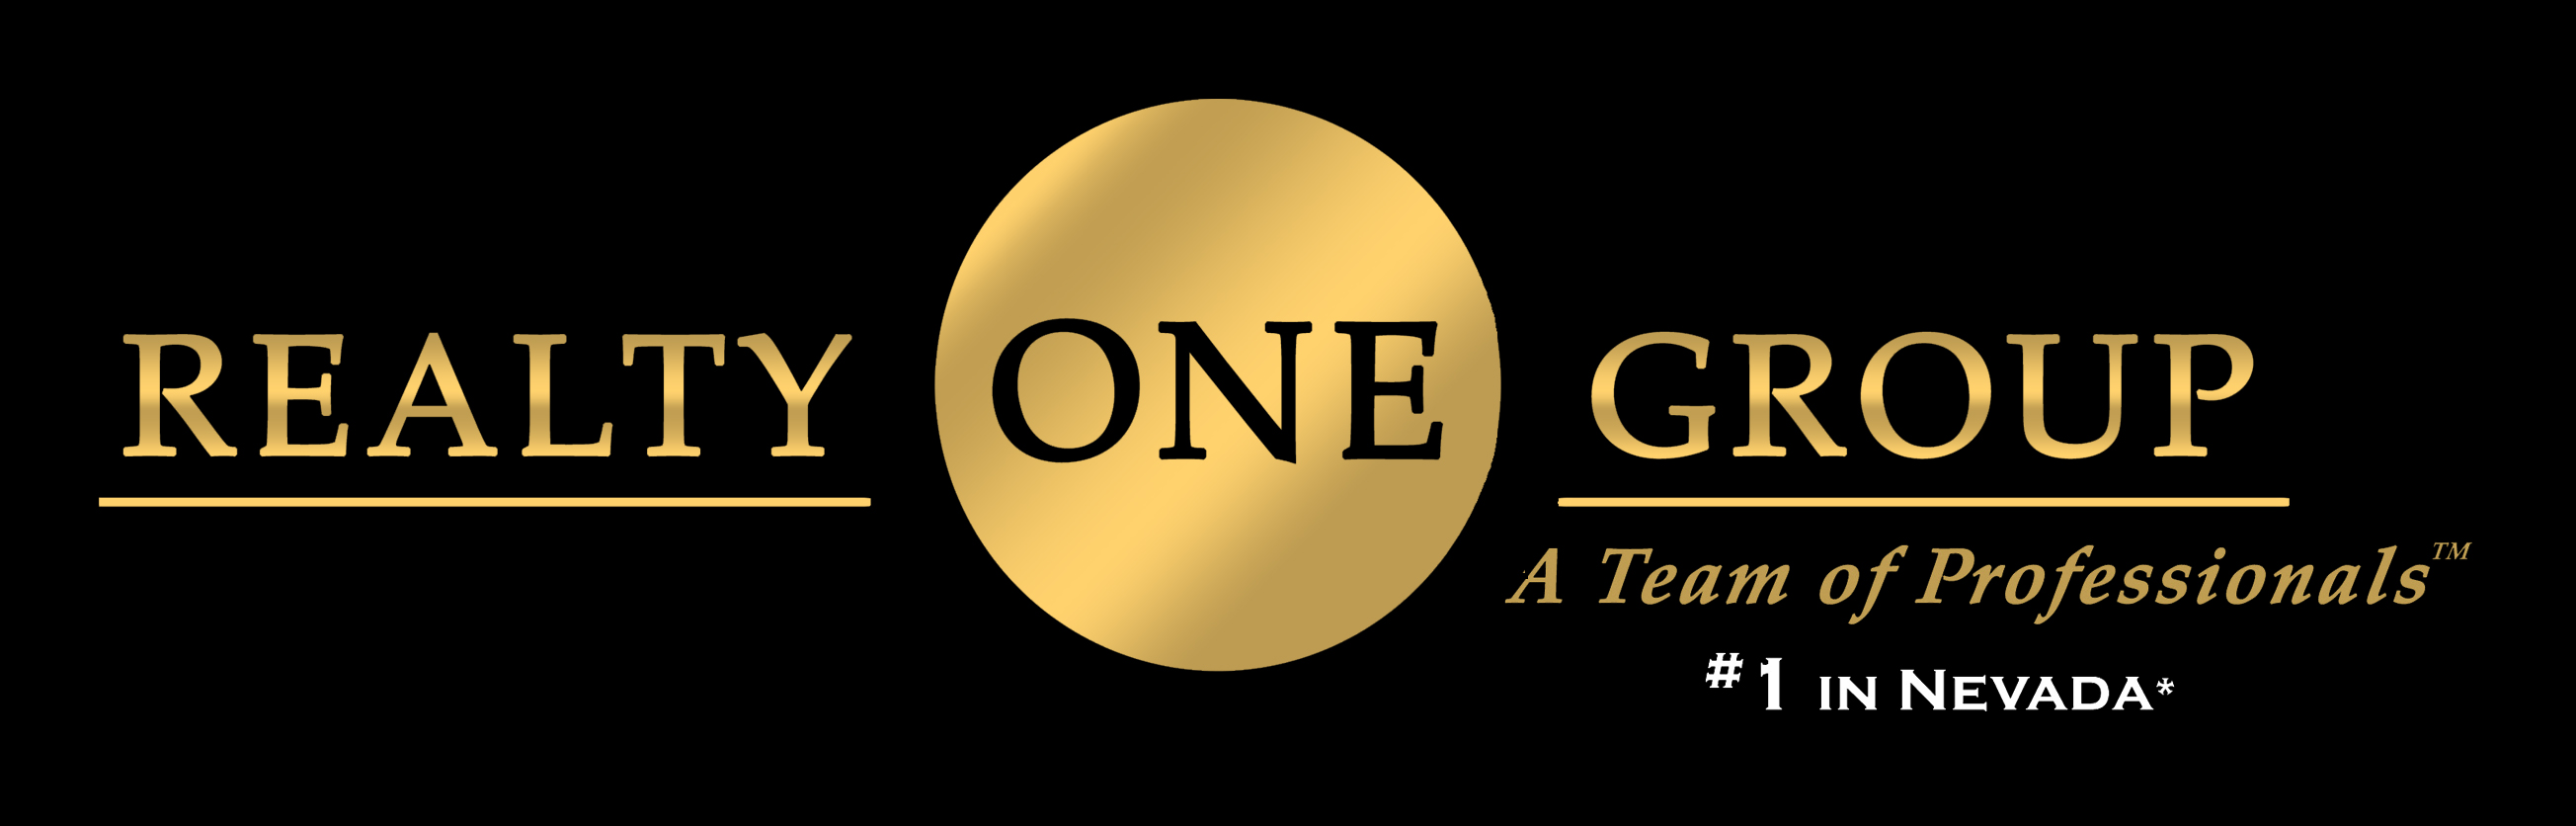 Realty One Group Has Several Programs For Agents Who Join Our Company